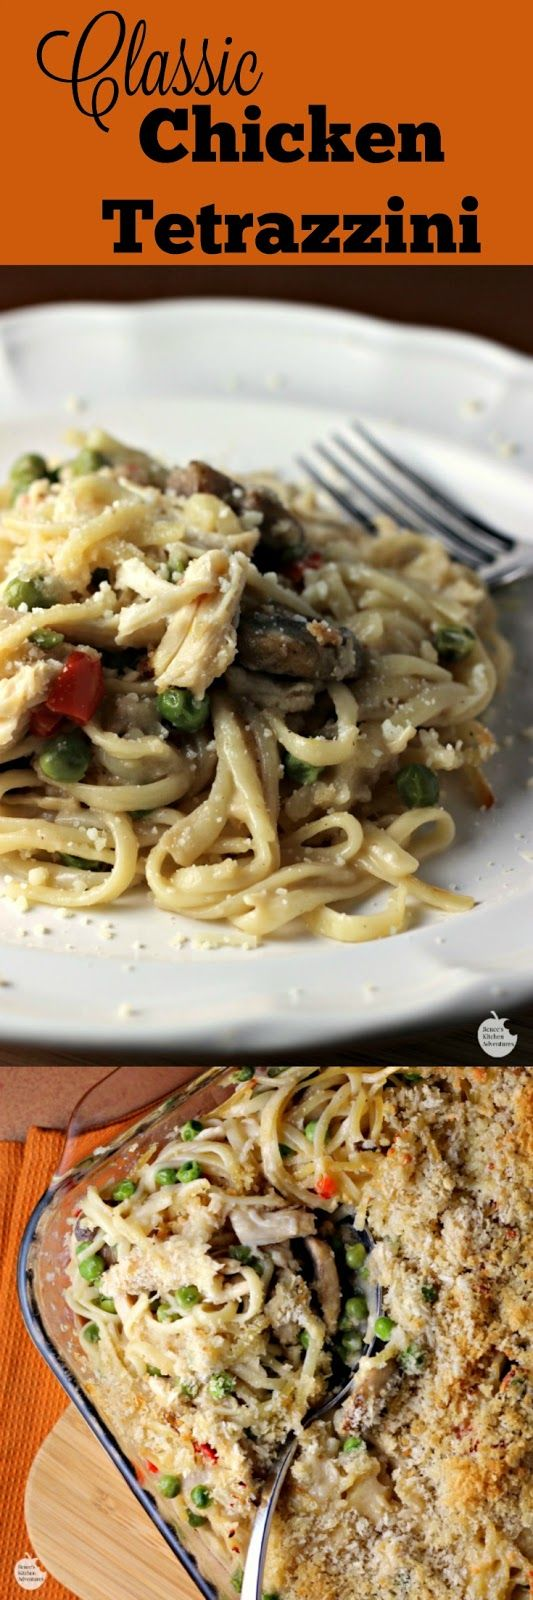 Slow Cooker Chicken Tetrazzini Recipe — Dishmaps